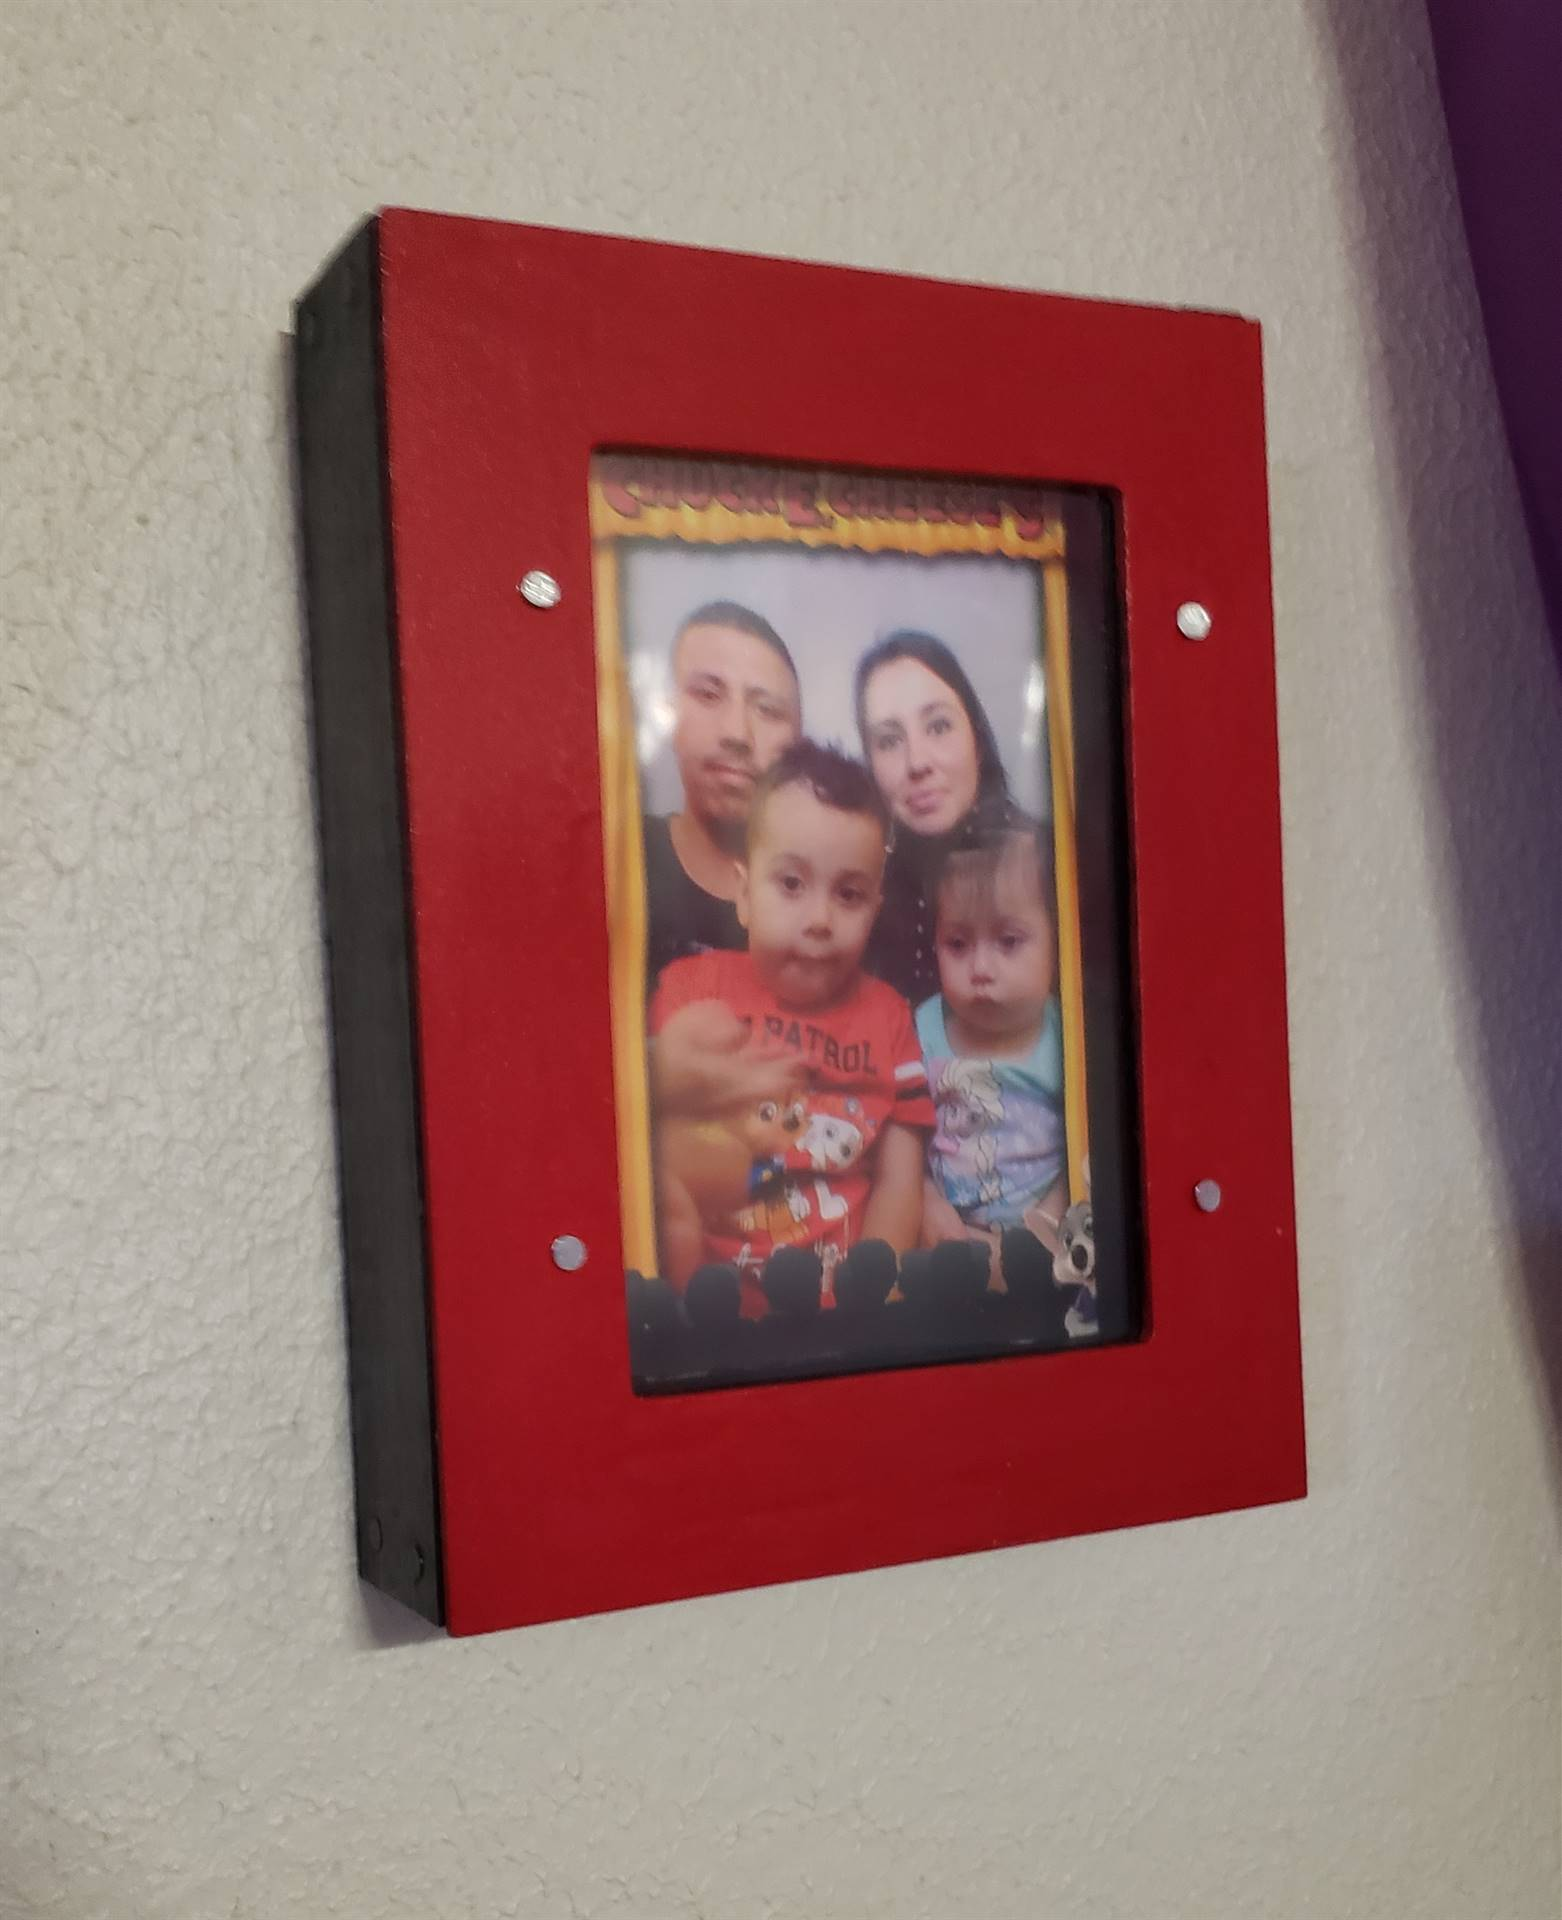 The little girl's picture frame is finished, and painted red, hanging with her family inside.